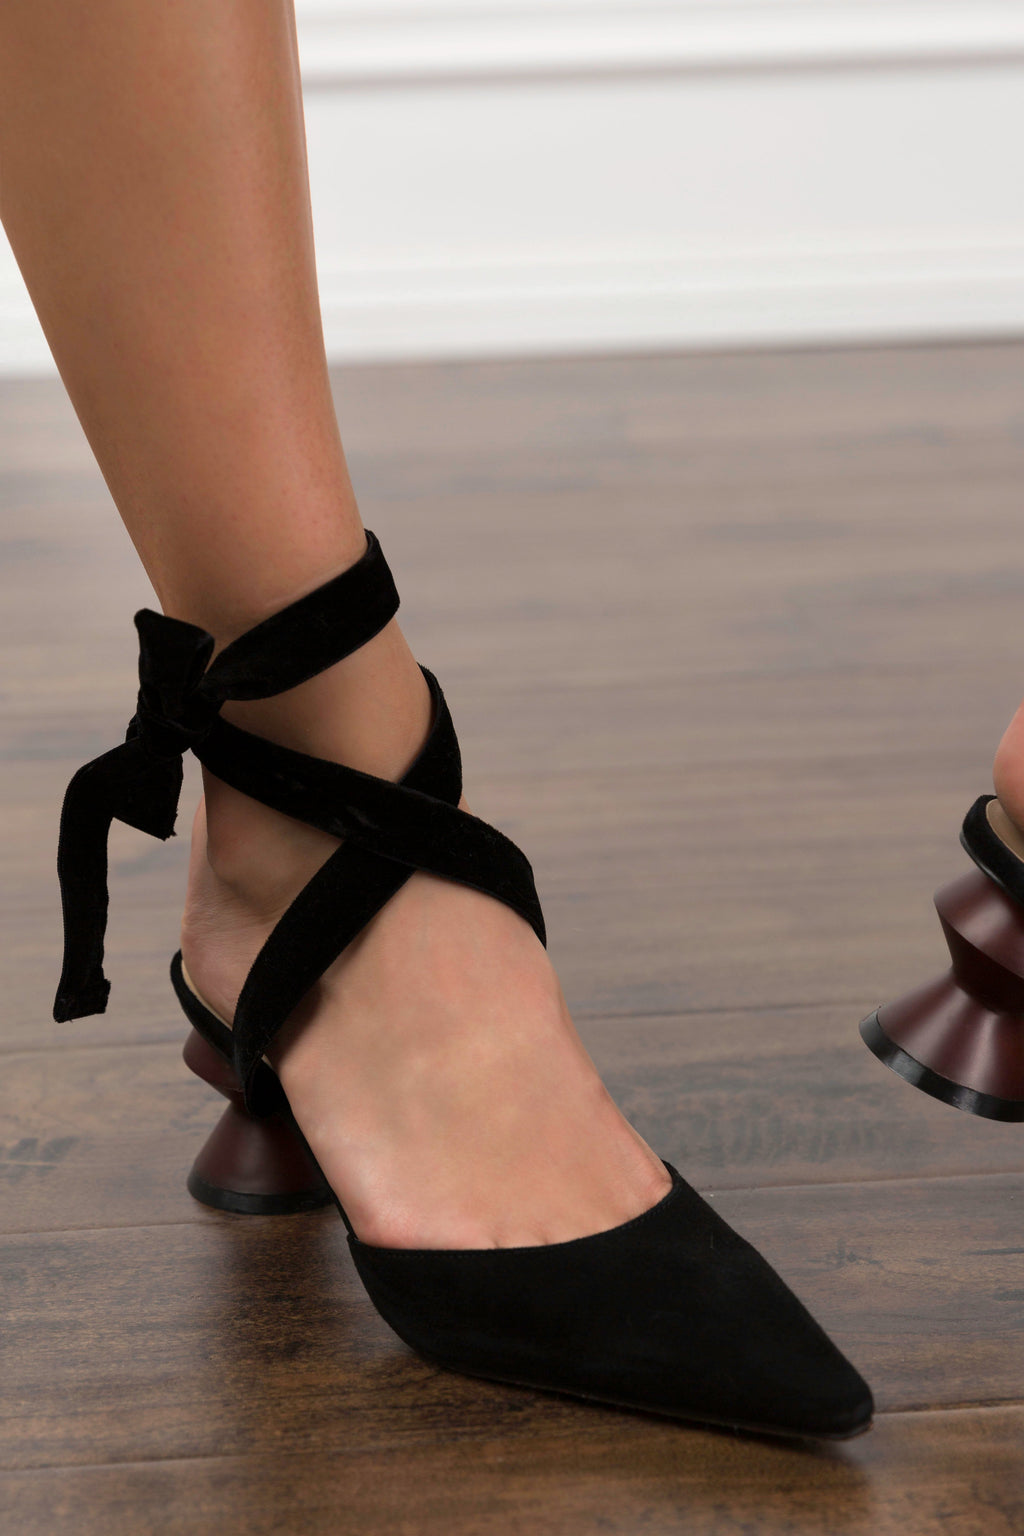 The Kirby Kitten Heels in SHOES by J.ING - an L.A based women's fashion line